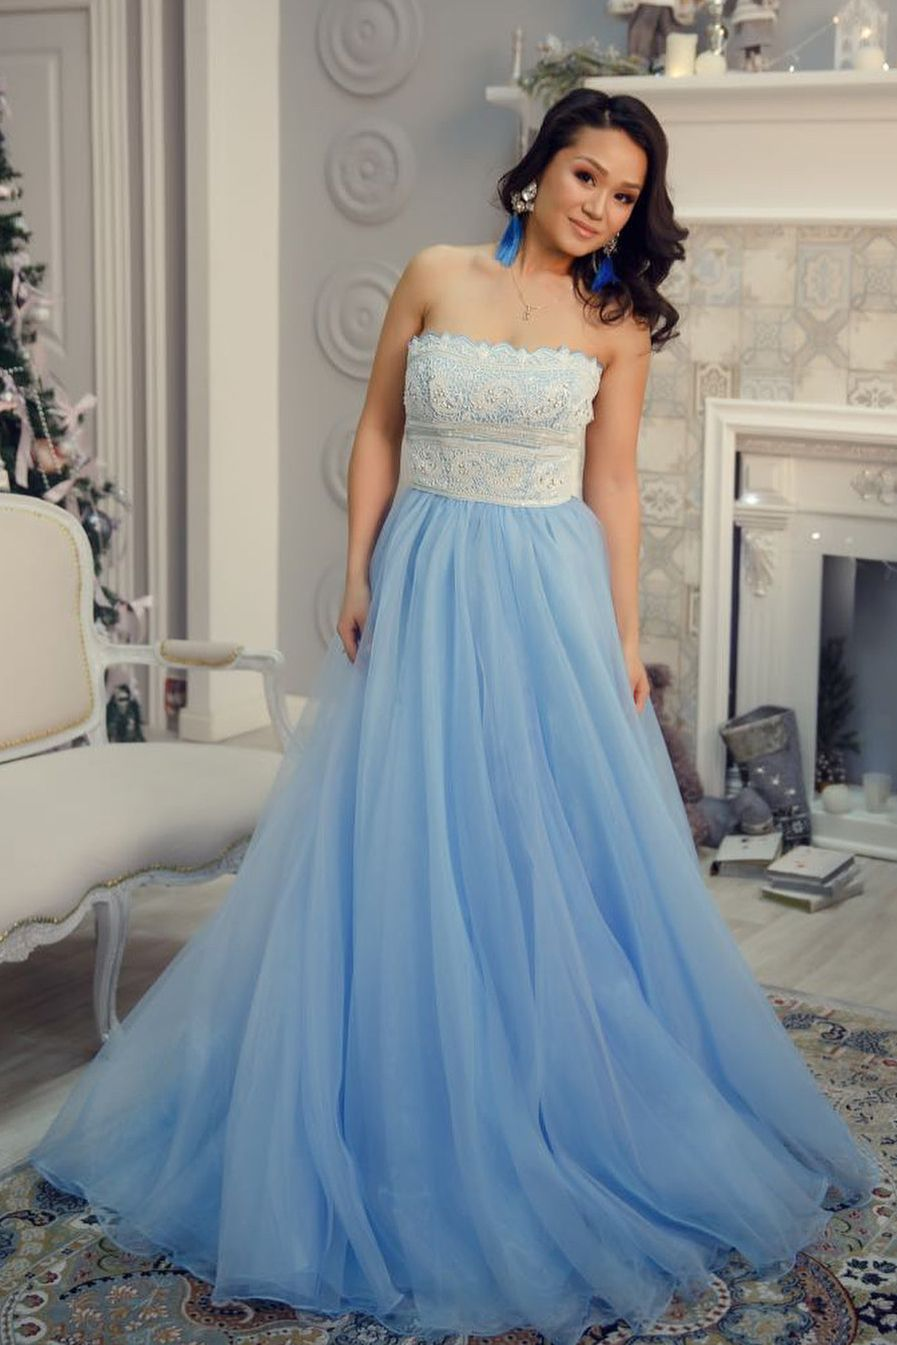 Princess Strapless Blue Long Prom Dress with White Lace | Dress ...